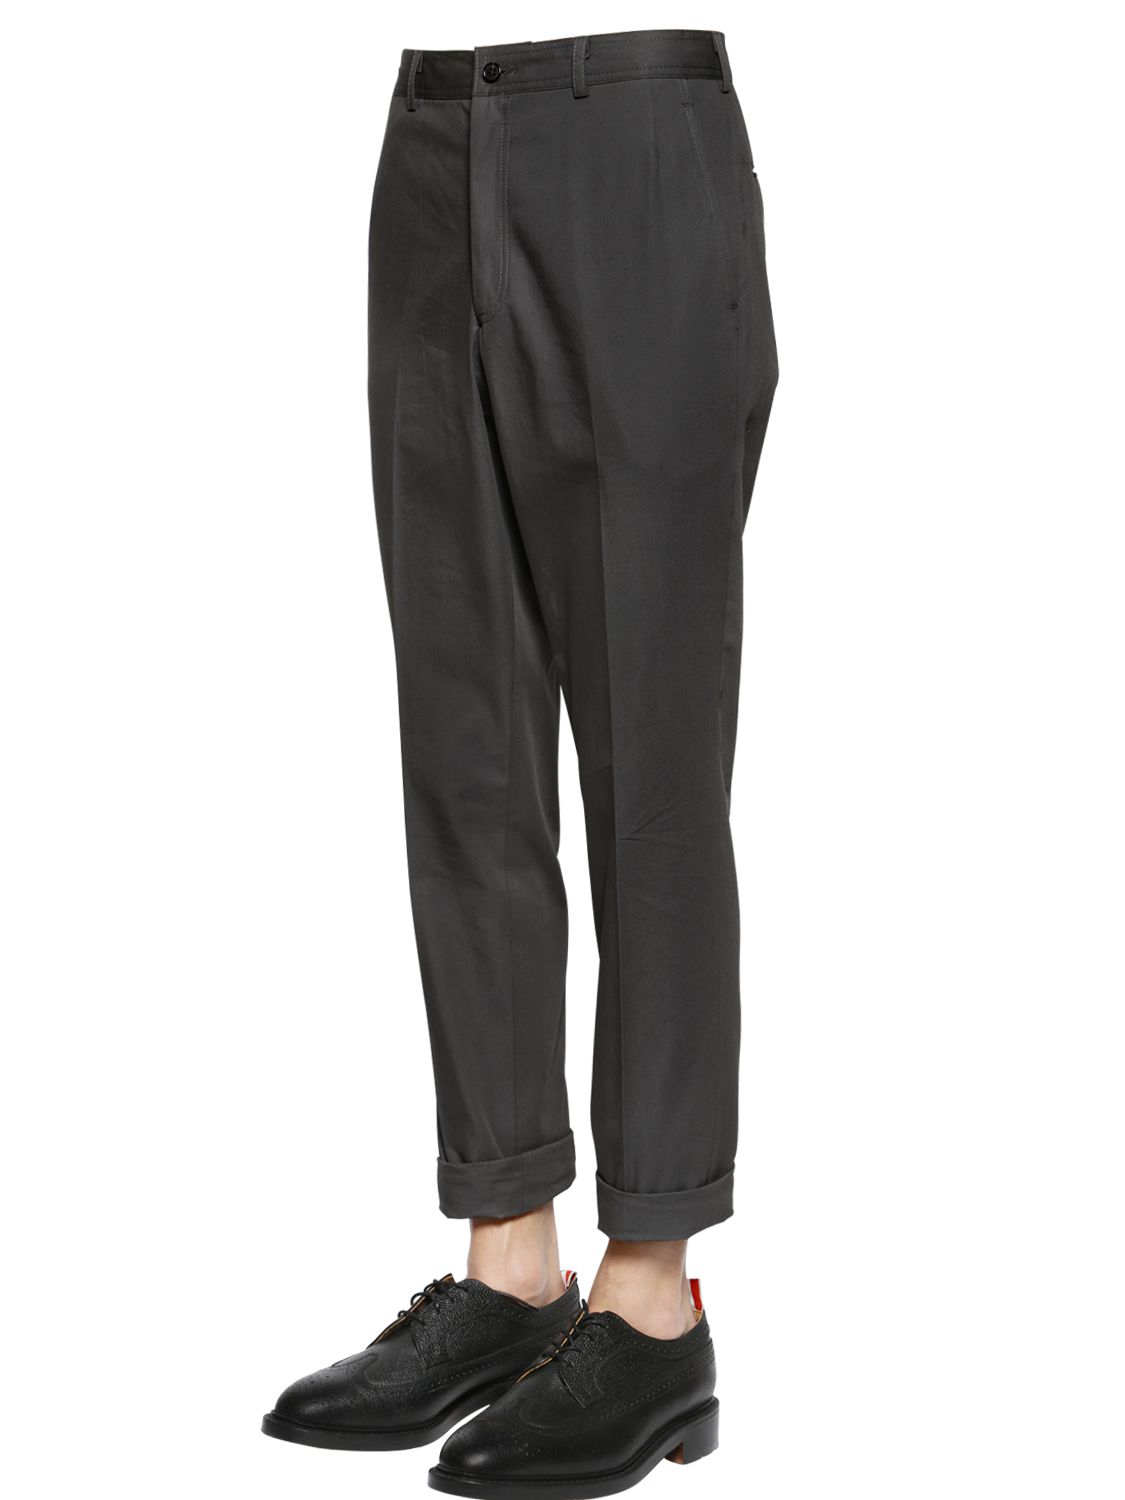 Thom browne Cotton Twill Pants in Gray for Men | Lyst